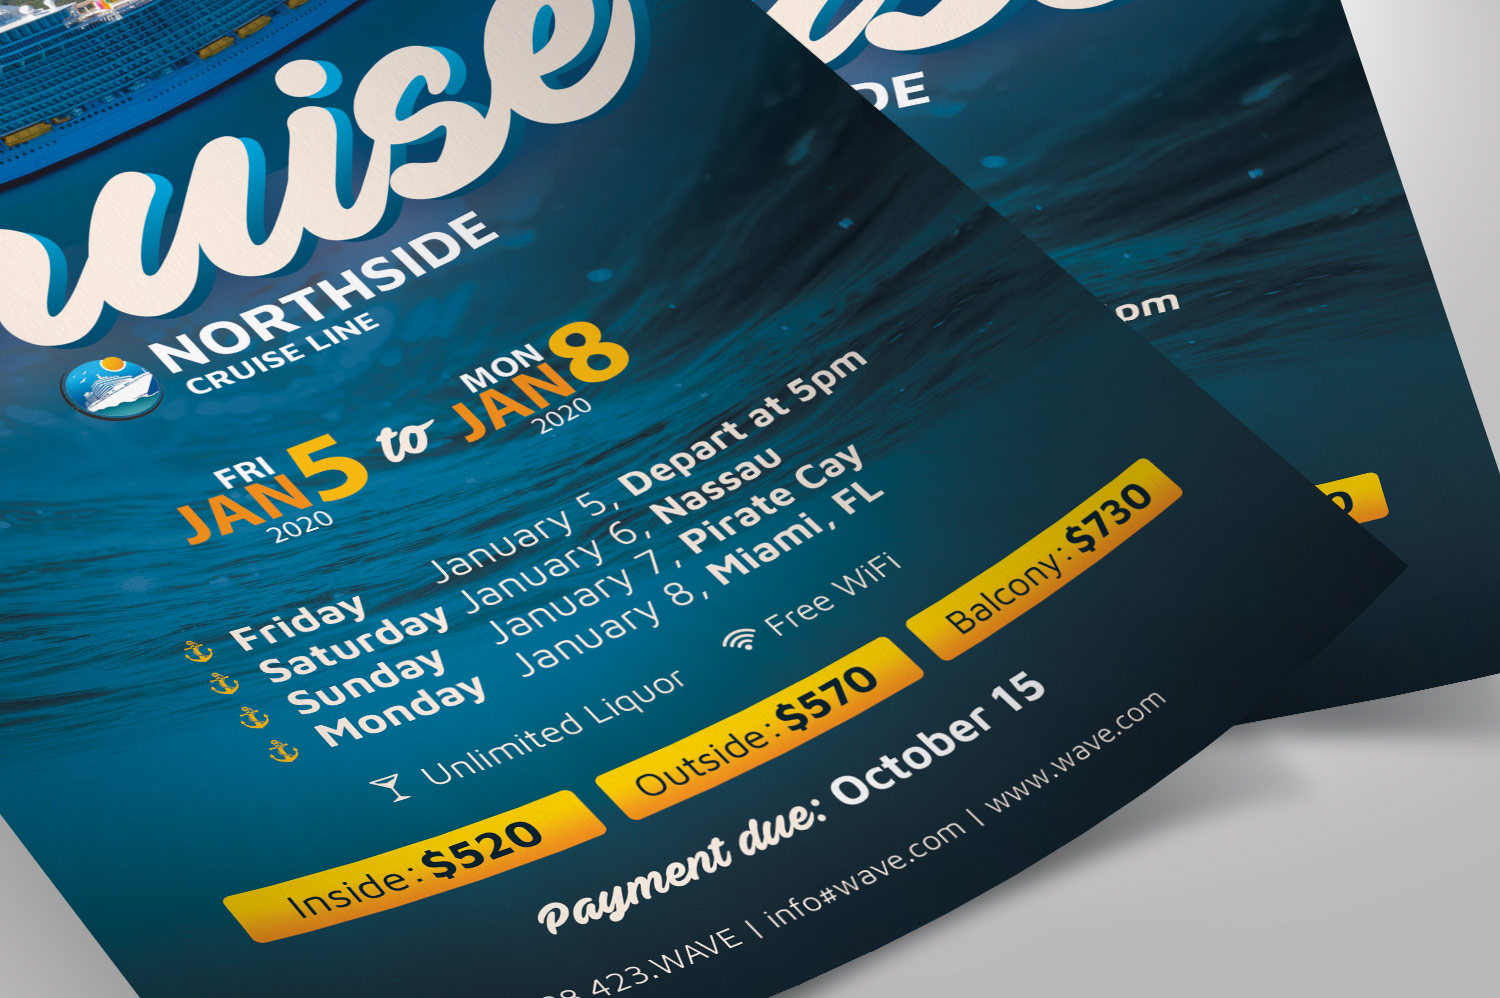 Cruise Travel Flyer Photoshop Template example image 6